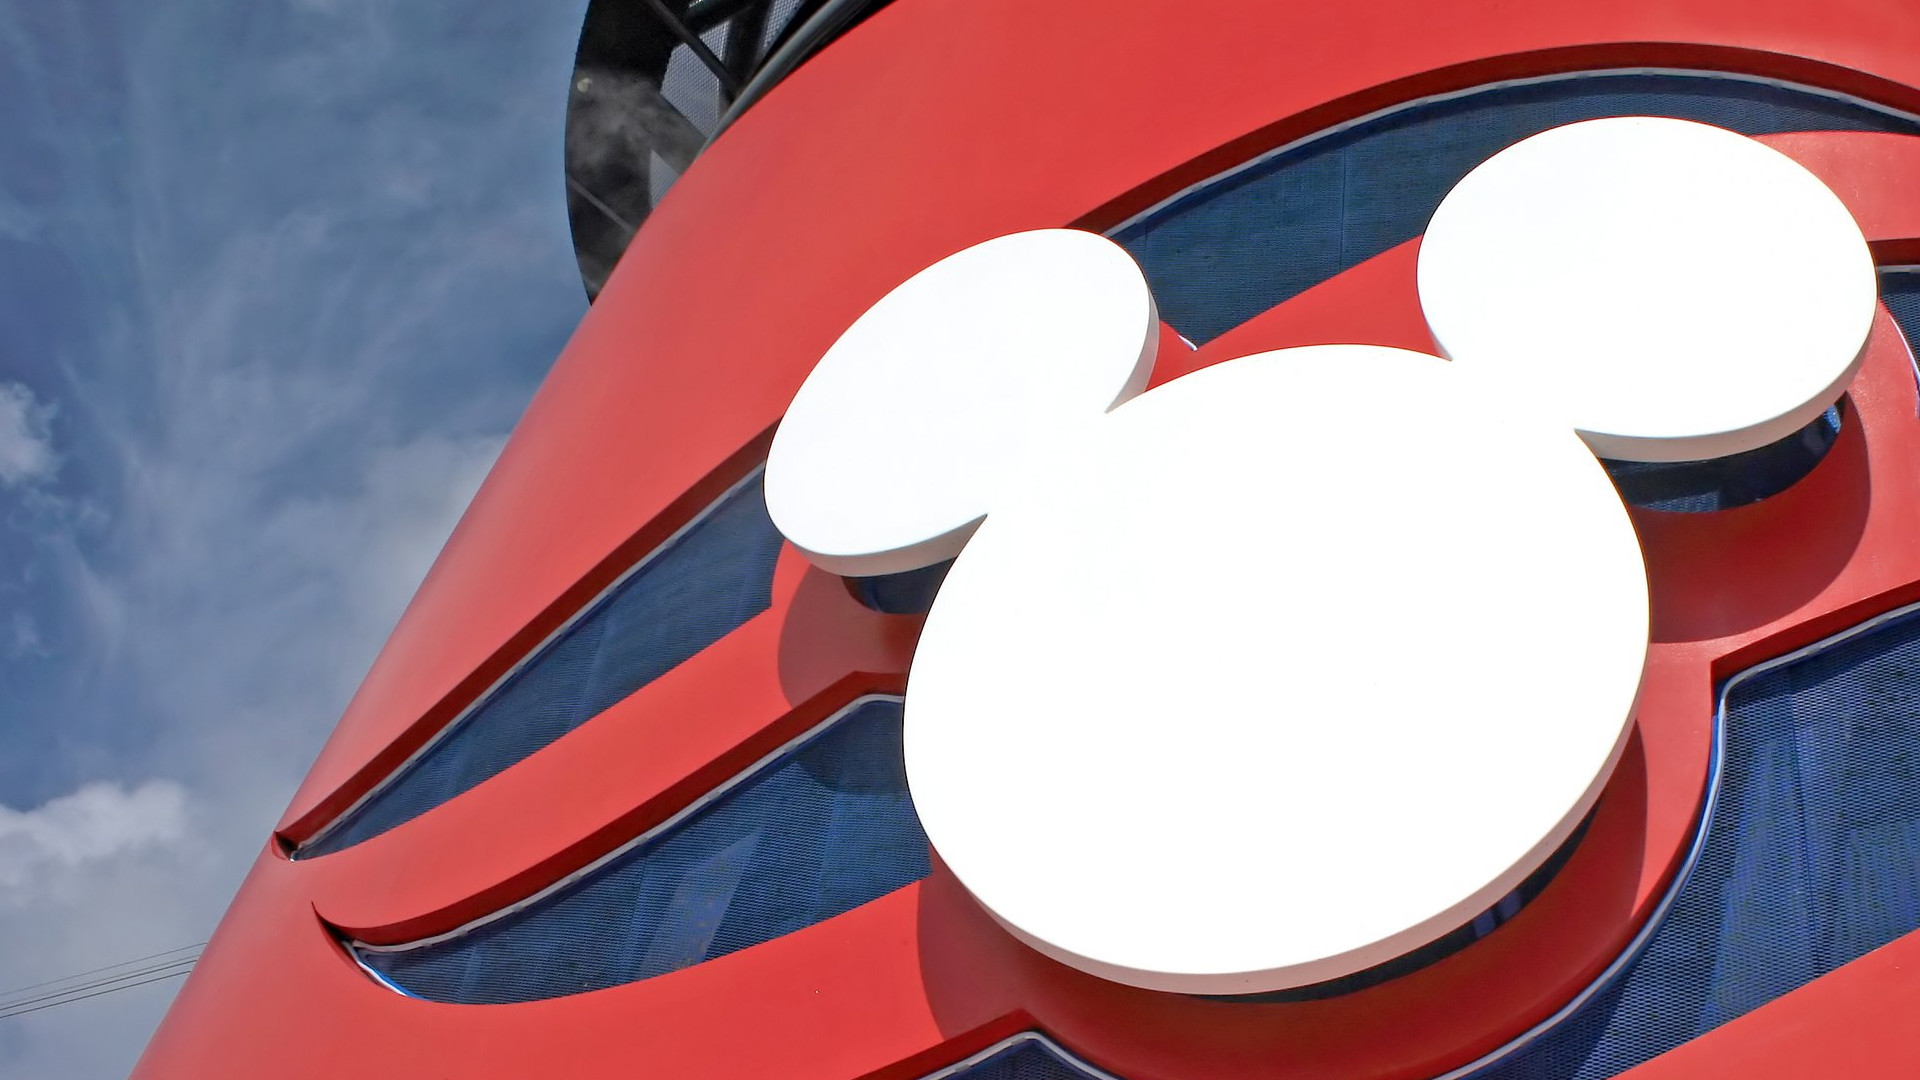 Disney Invests in Online Video Strategy with $500M Acquisition of Maker Studios